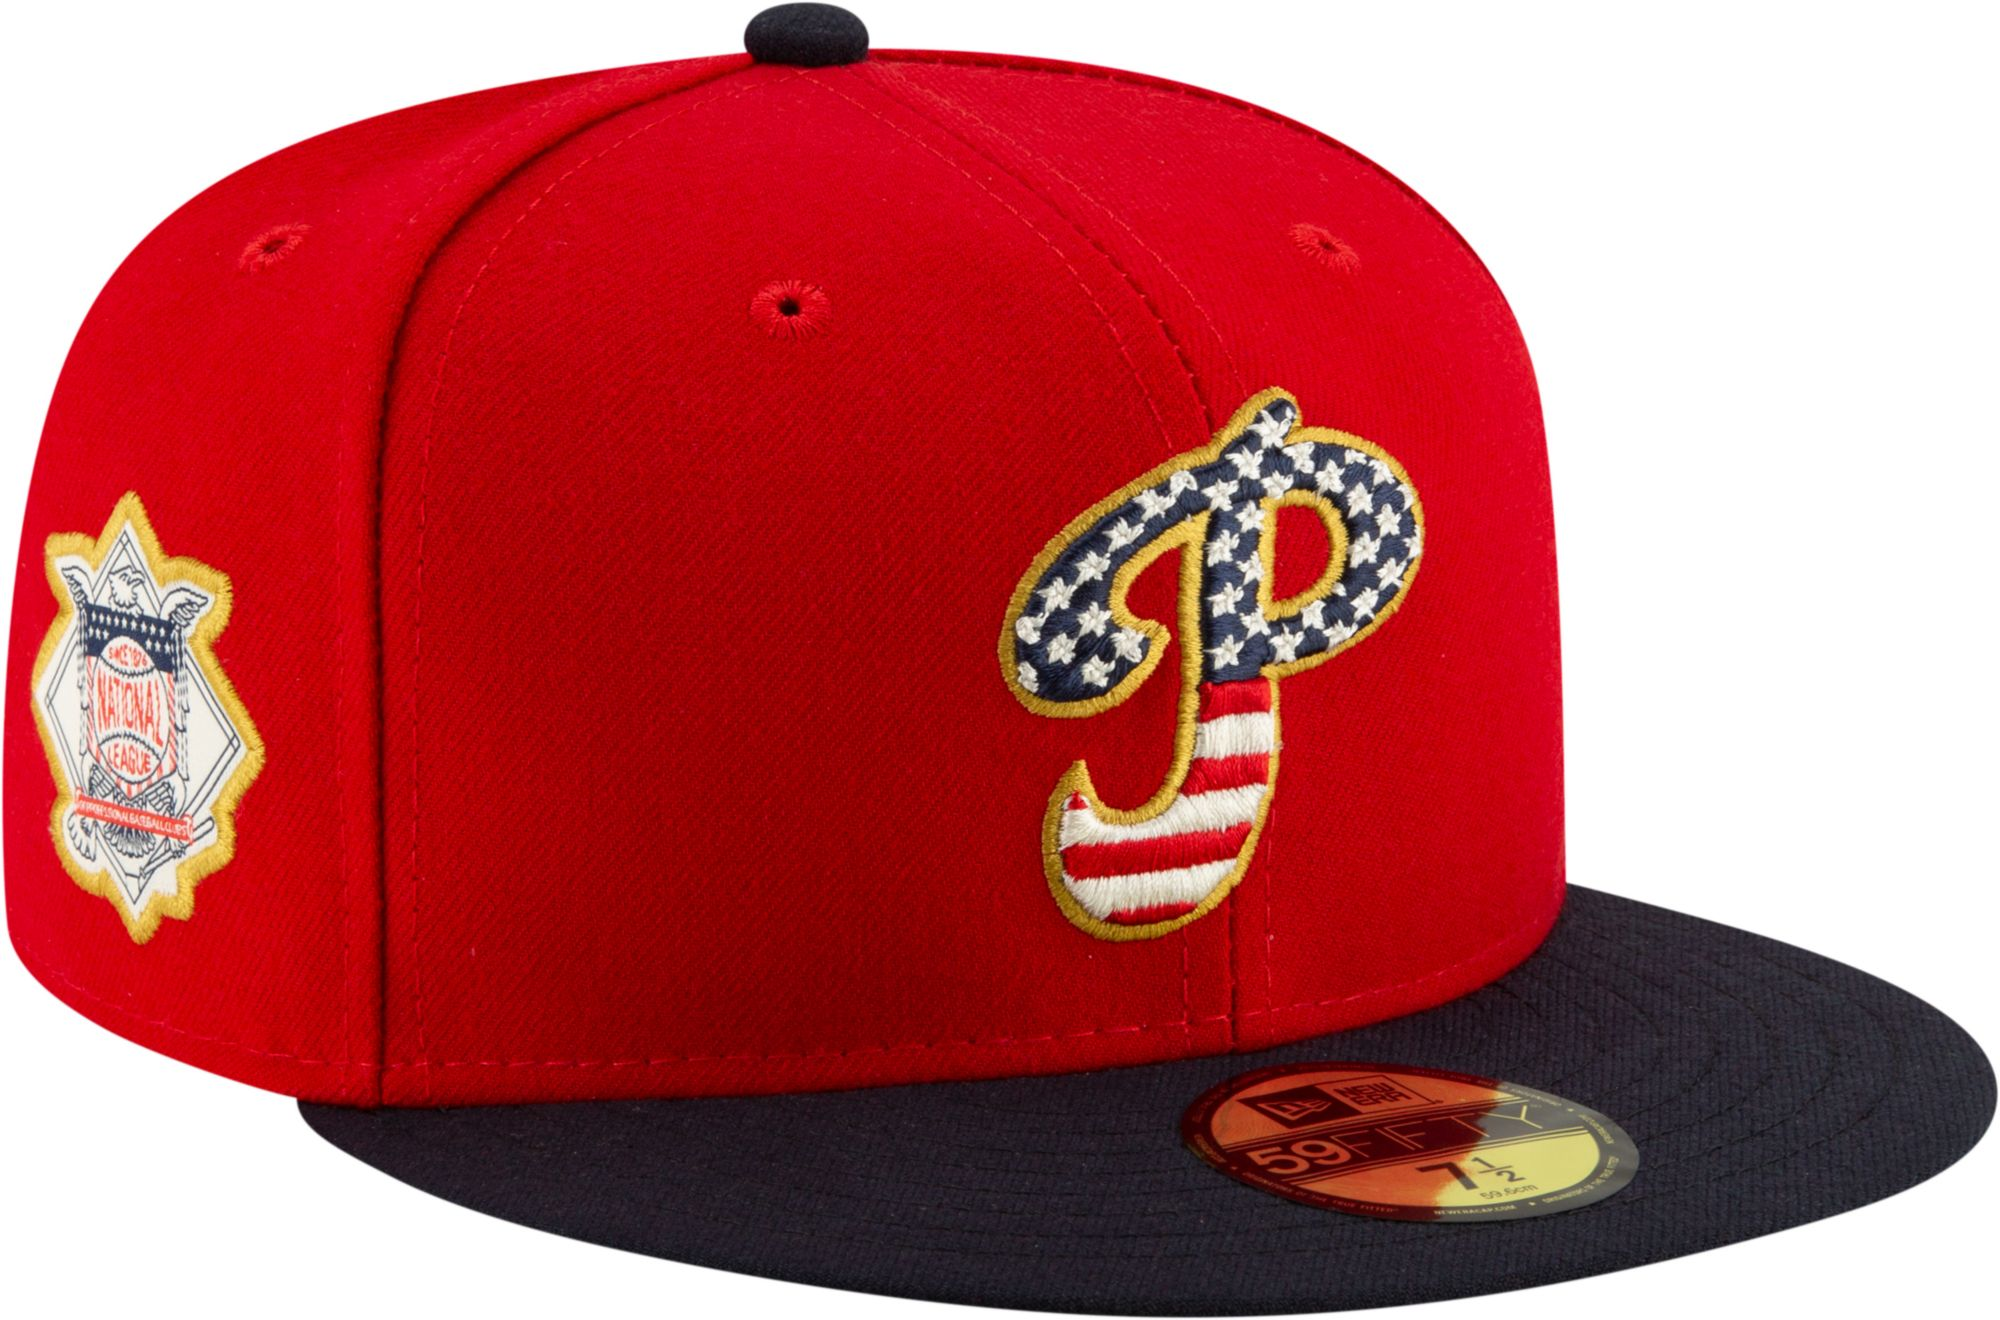 1e1e9846bcb228 New Era Men's Philadelphia Phillies 59Fifty 2019 4th of July Fitted ...